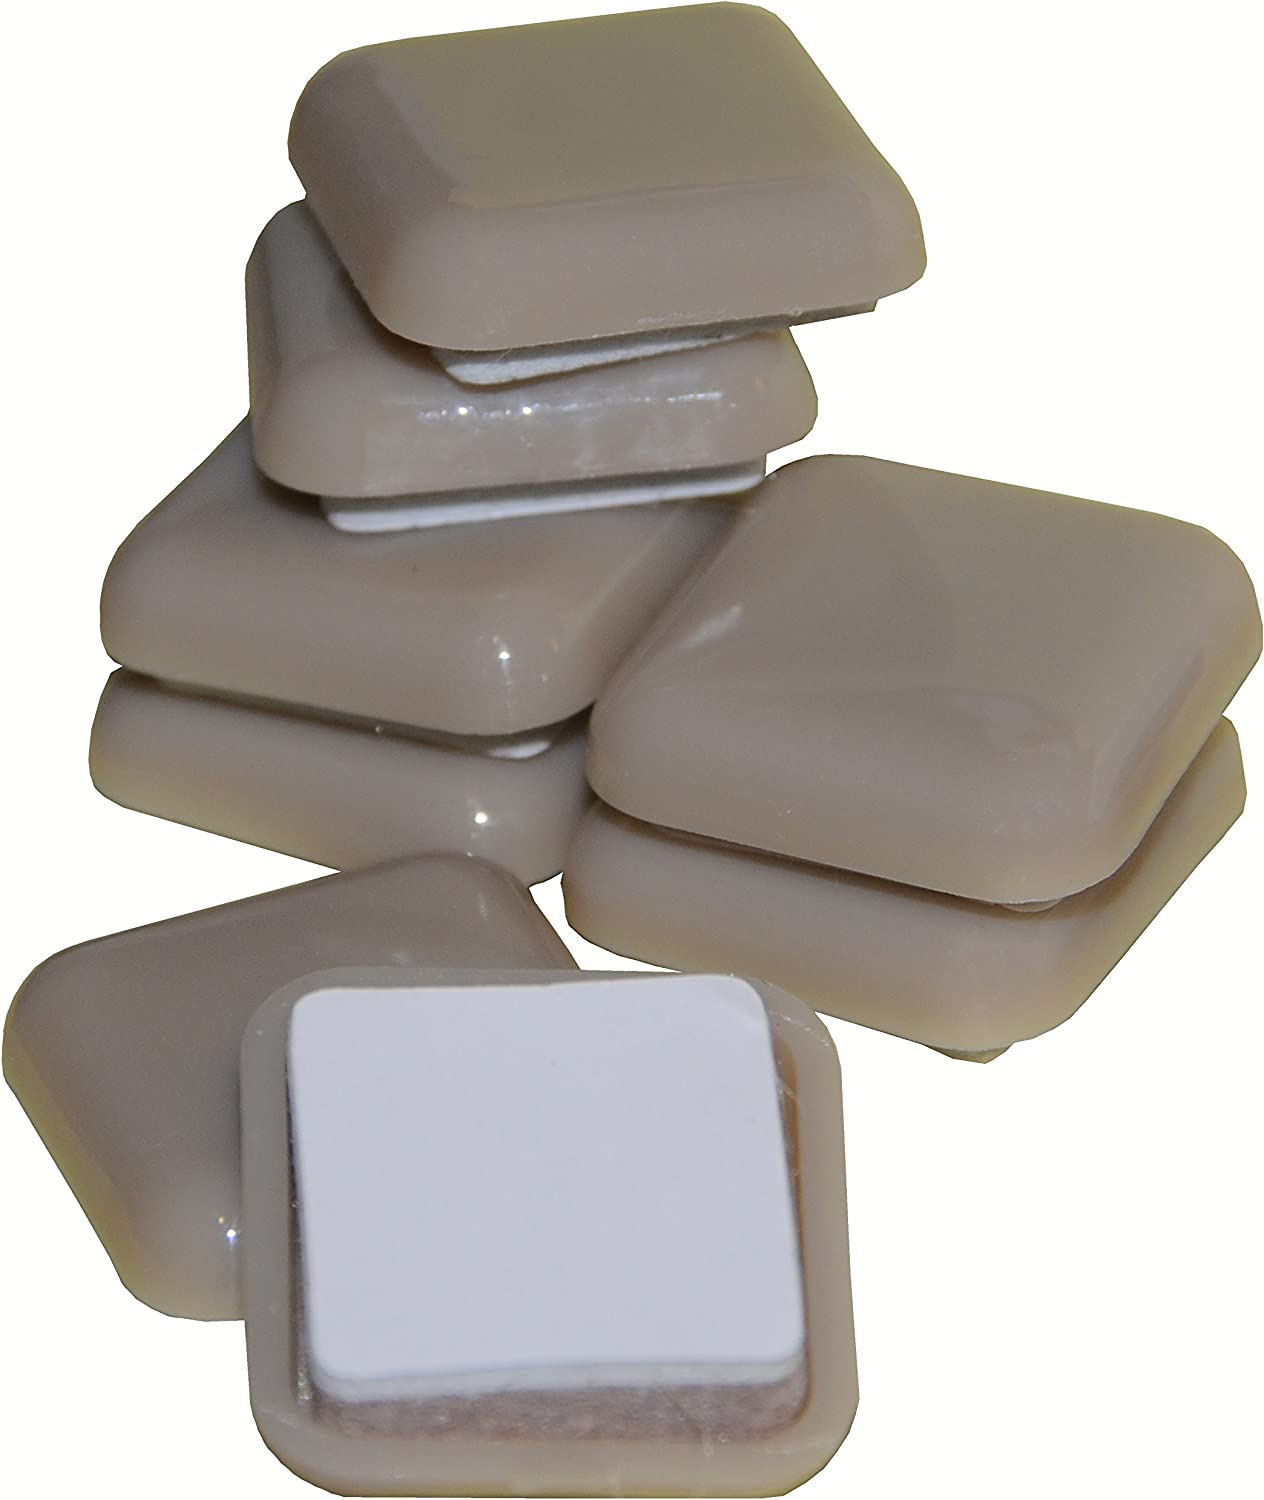 Heavy Duty -1 Square Quality Sliders Unmatched Surface Protection 8 Pack Great Fit-Fuzz Free- Refreshingly Quiet Beige Self-Stick Furniture Sliders//Movers